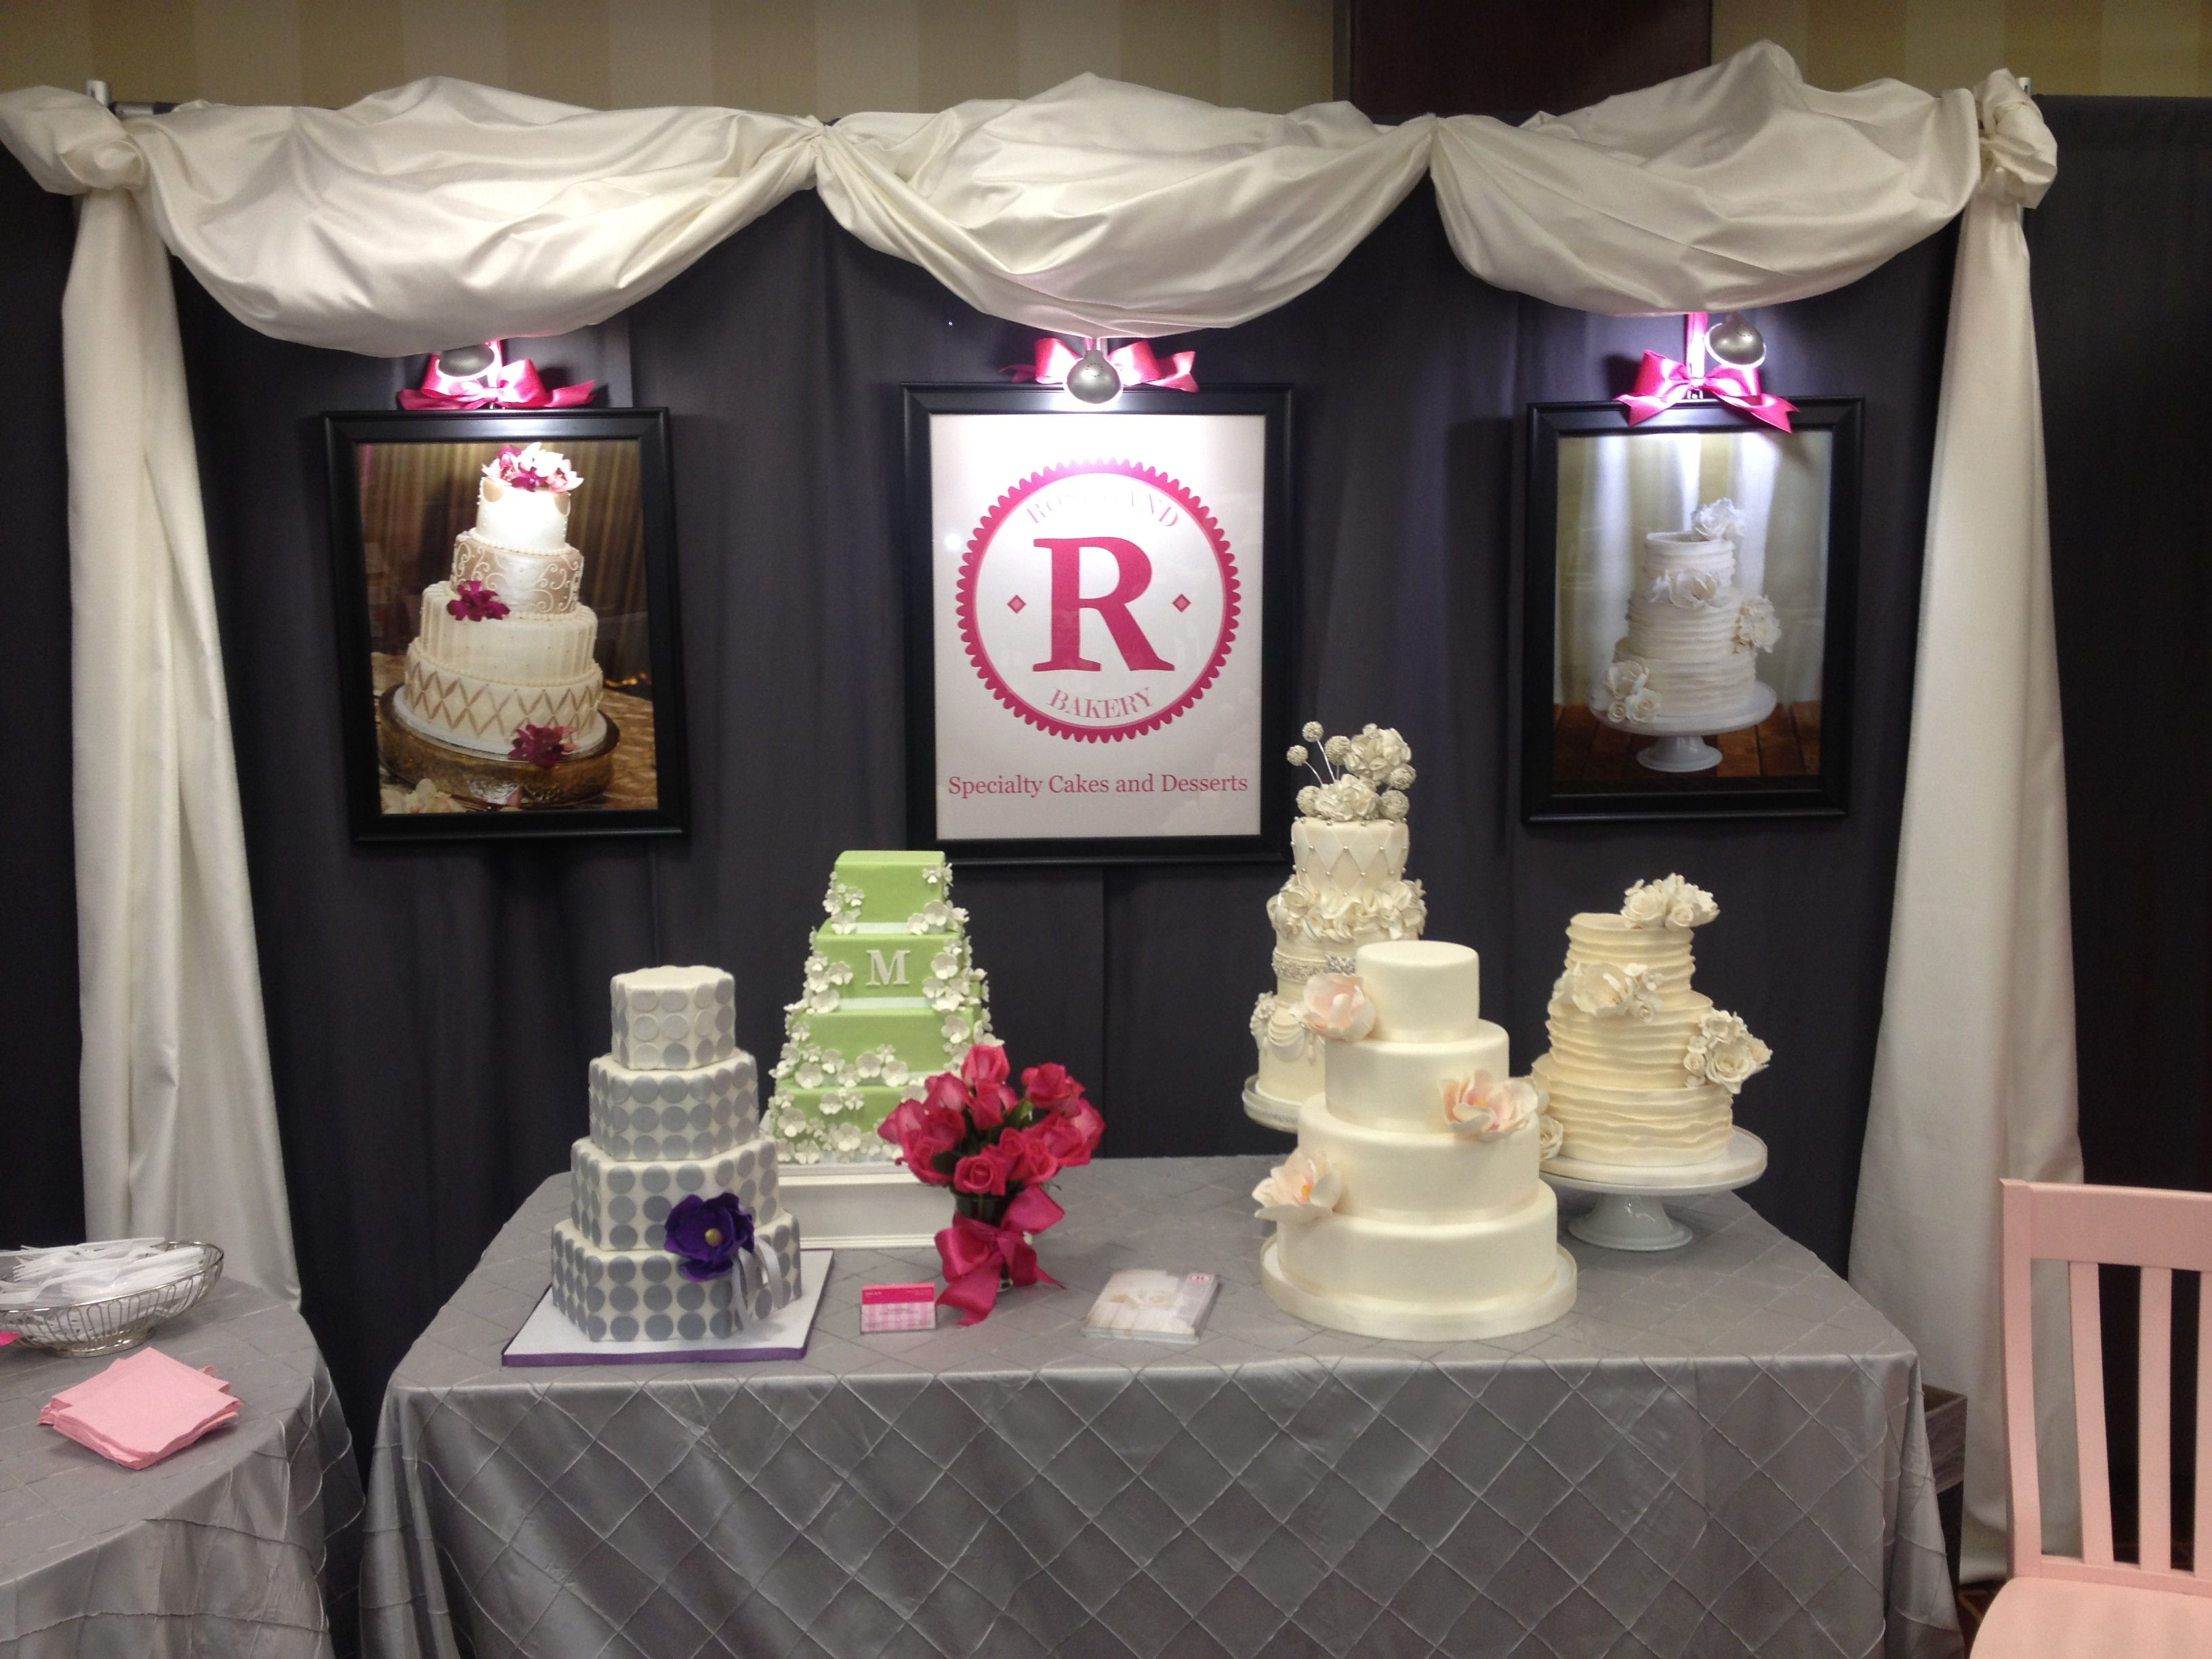 wedding related booths at trade shows premier bridal show in chattanooga trade show booths pinterest wedding